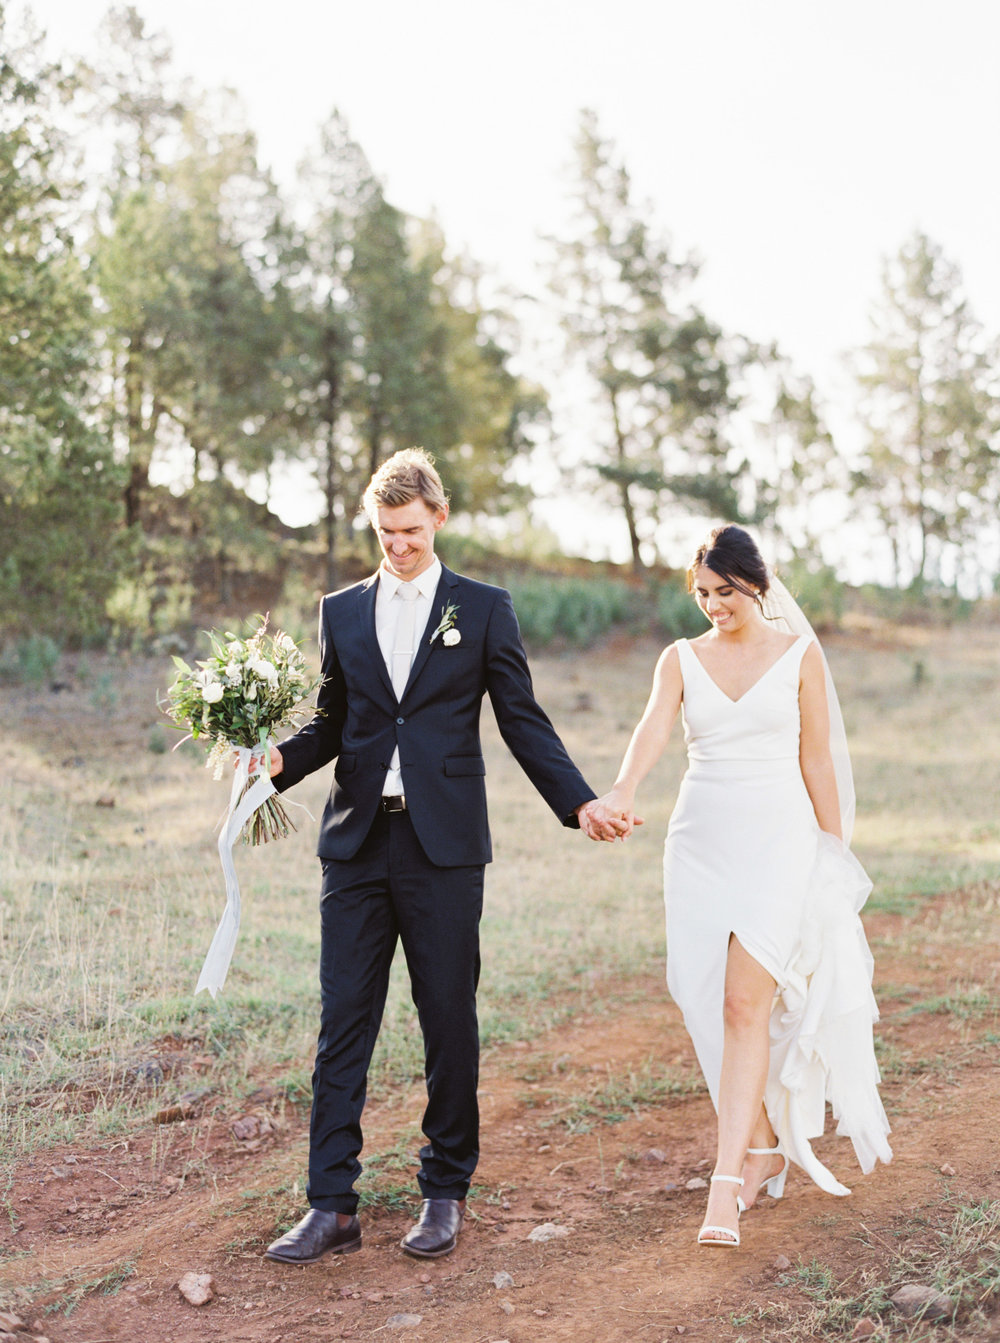 00053- Olive Tree Mediterranean Wedding in Mudgee NSW Australia Fine Art Film Wedding Lifestyle Photographer Sheri McMahon_.jpg